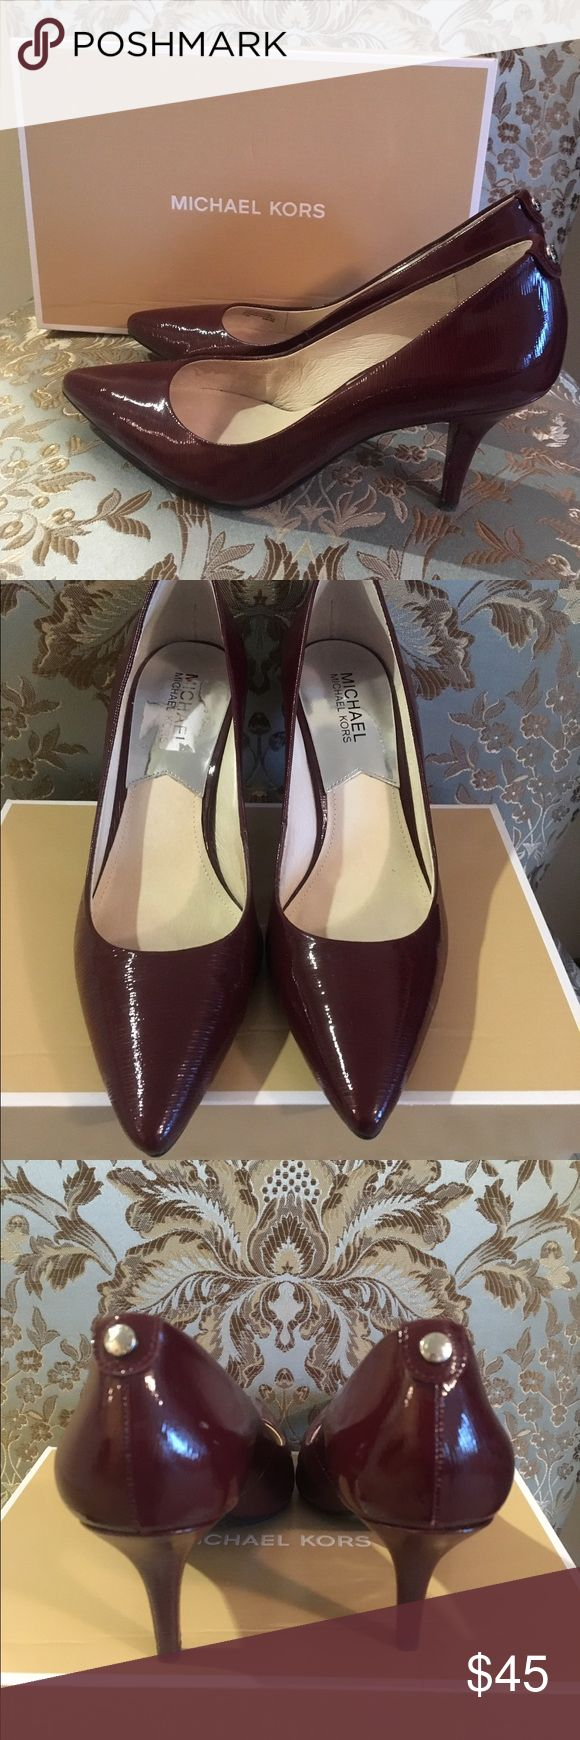 """Michael Kors 2.5"""" patent leather burgundy heels PRICED TO SELL! Gorgeous patent leather heels! Color is Merlot. Silver snap on the back that says Michael Kors. They have only been worn a couple of times. Look new. The only things are a very tiny spot on the back right heel where stitching is (in pic) and a very tiny spot on toe of the left shoe (in pic). I have odd shaped feet so they rub the top of the side of my feet near my toes. I put some cushion to try to help. There is a little…"""